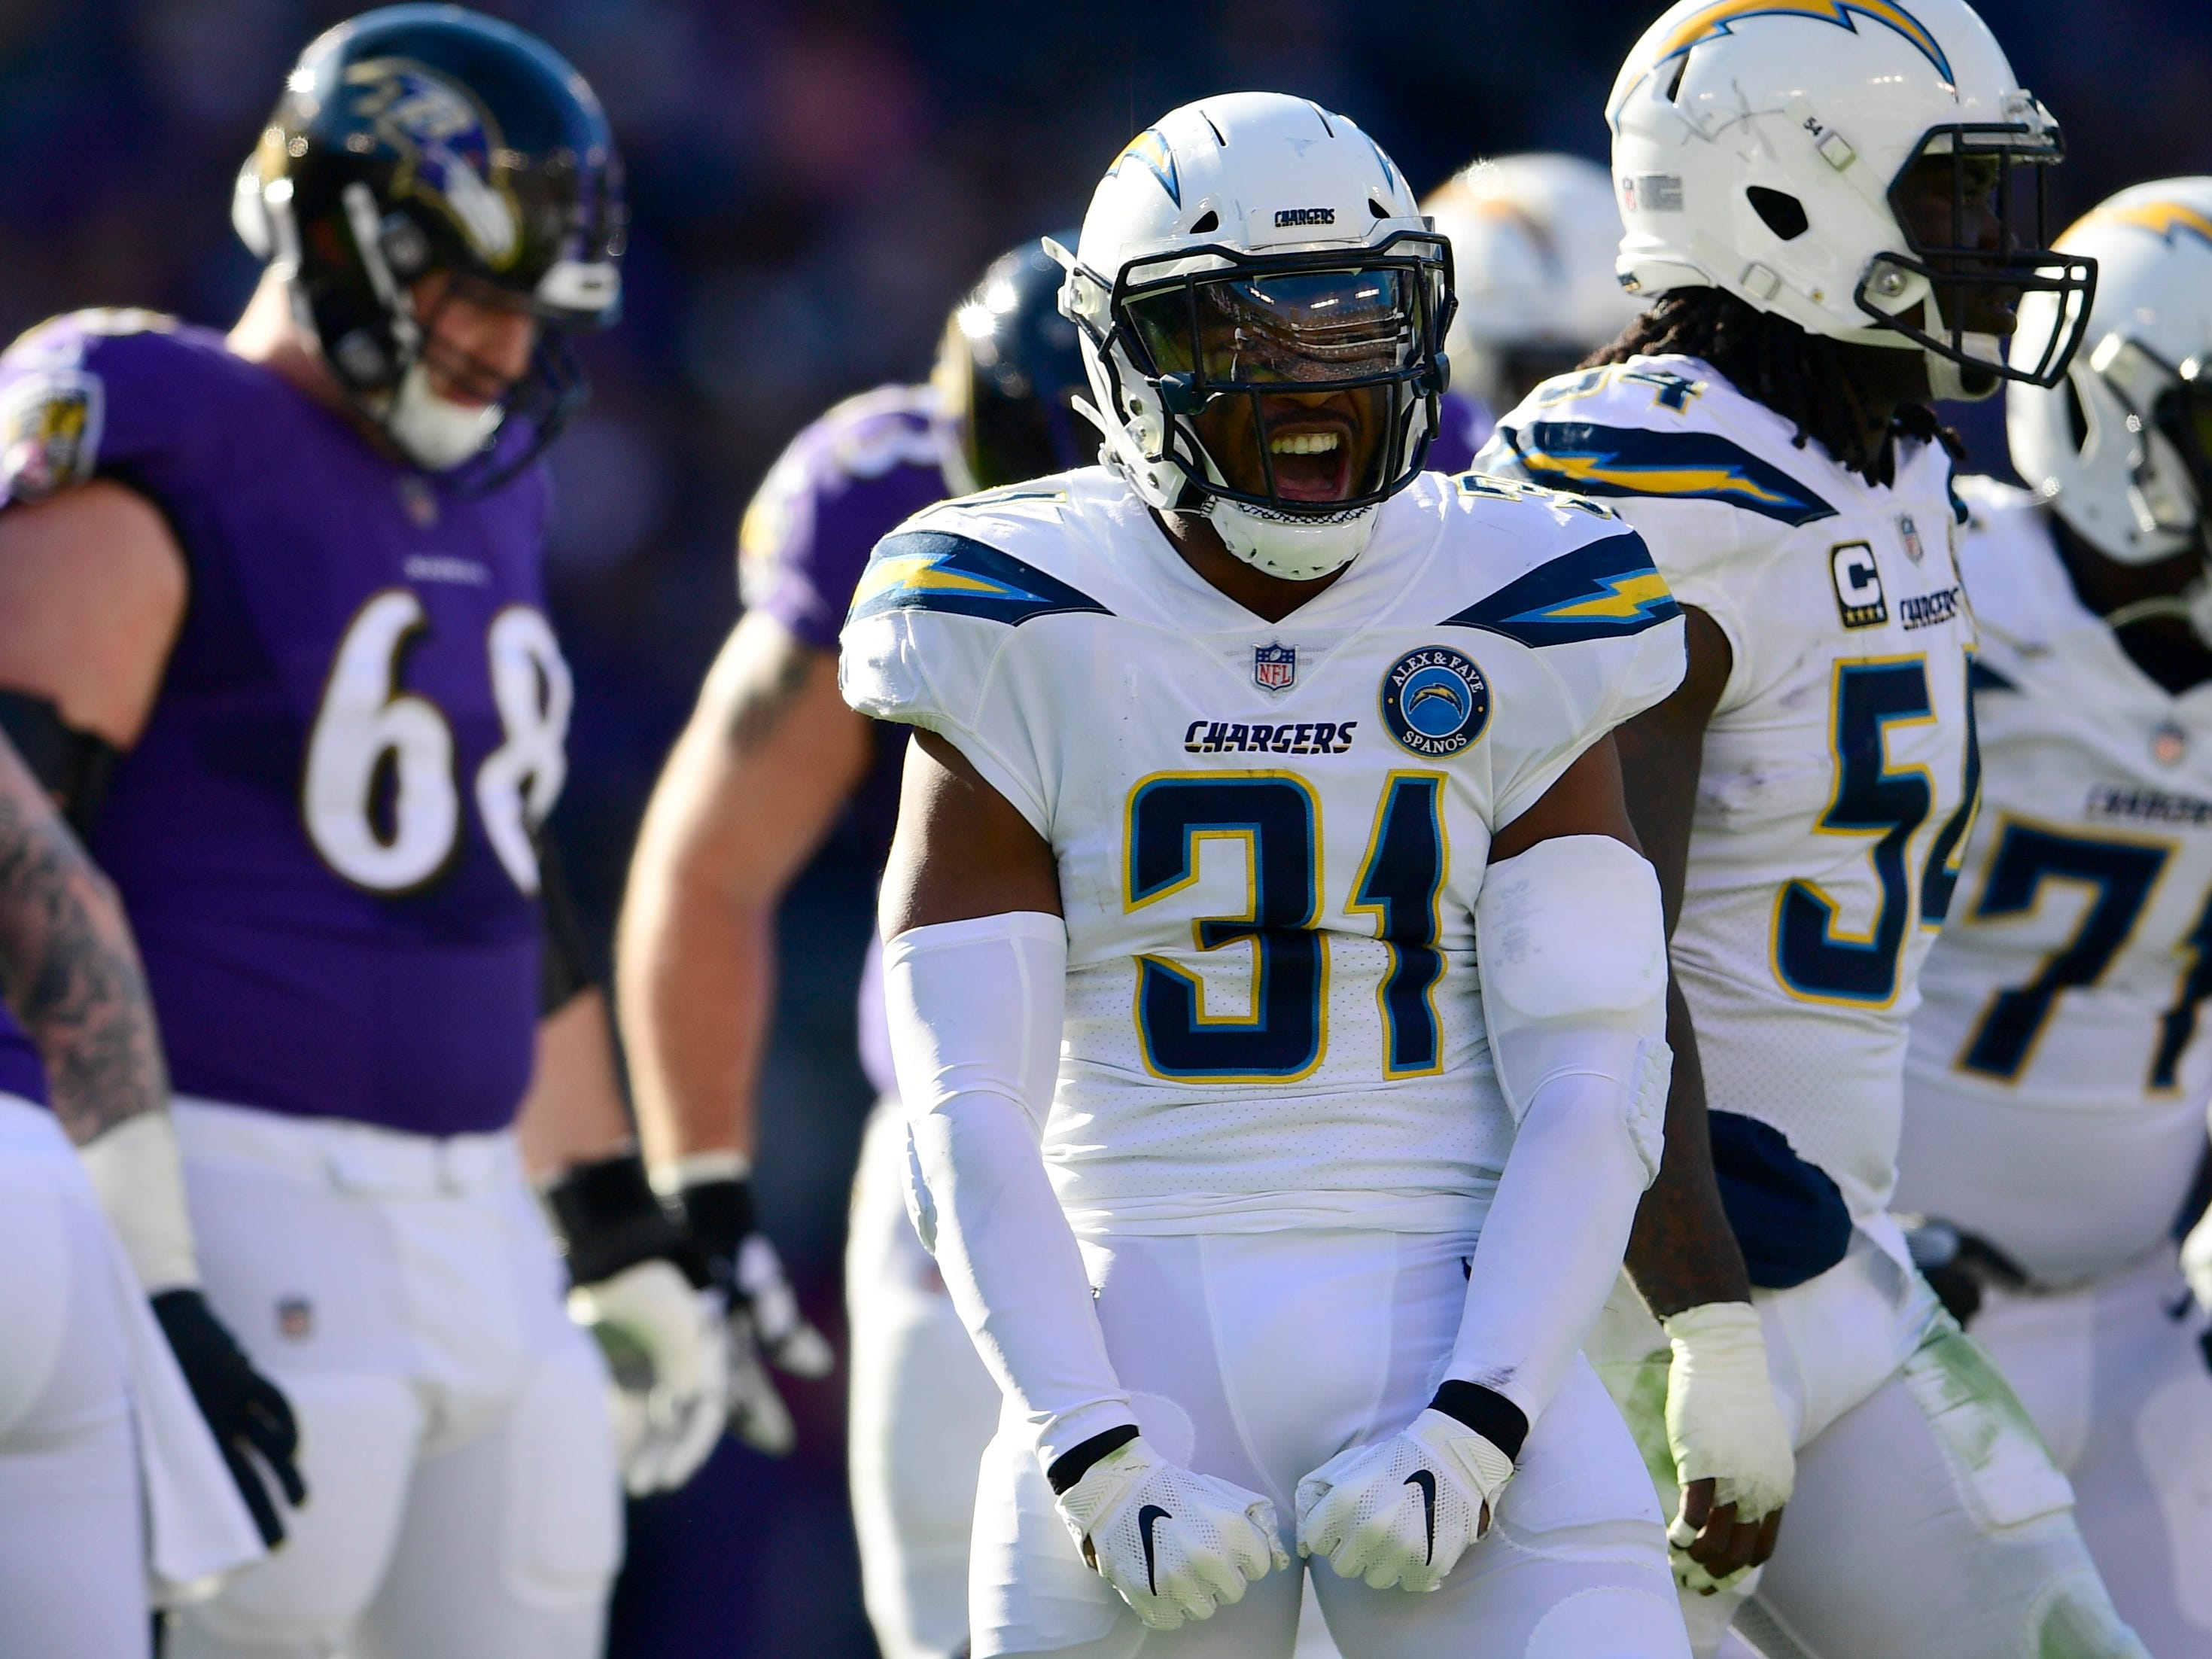 Jan 6, 2019; Baltimore, MD, USA; Los Angeles Chargers safety Adrian Phillips (31) reacts after tackling Baltimore Ravens running back Kenneth Dixon (not pictured) during the first quarter in a AFC Wild Card playoff football game at M&T Bank Stadium. Mandatory Credit: Tommy Gilligan-USA TODAY Sports